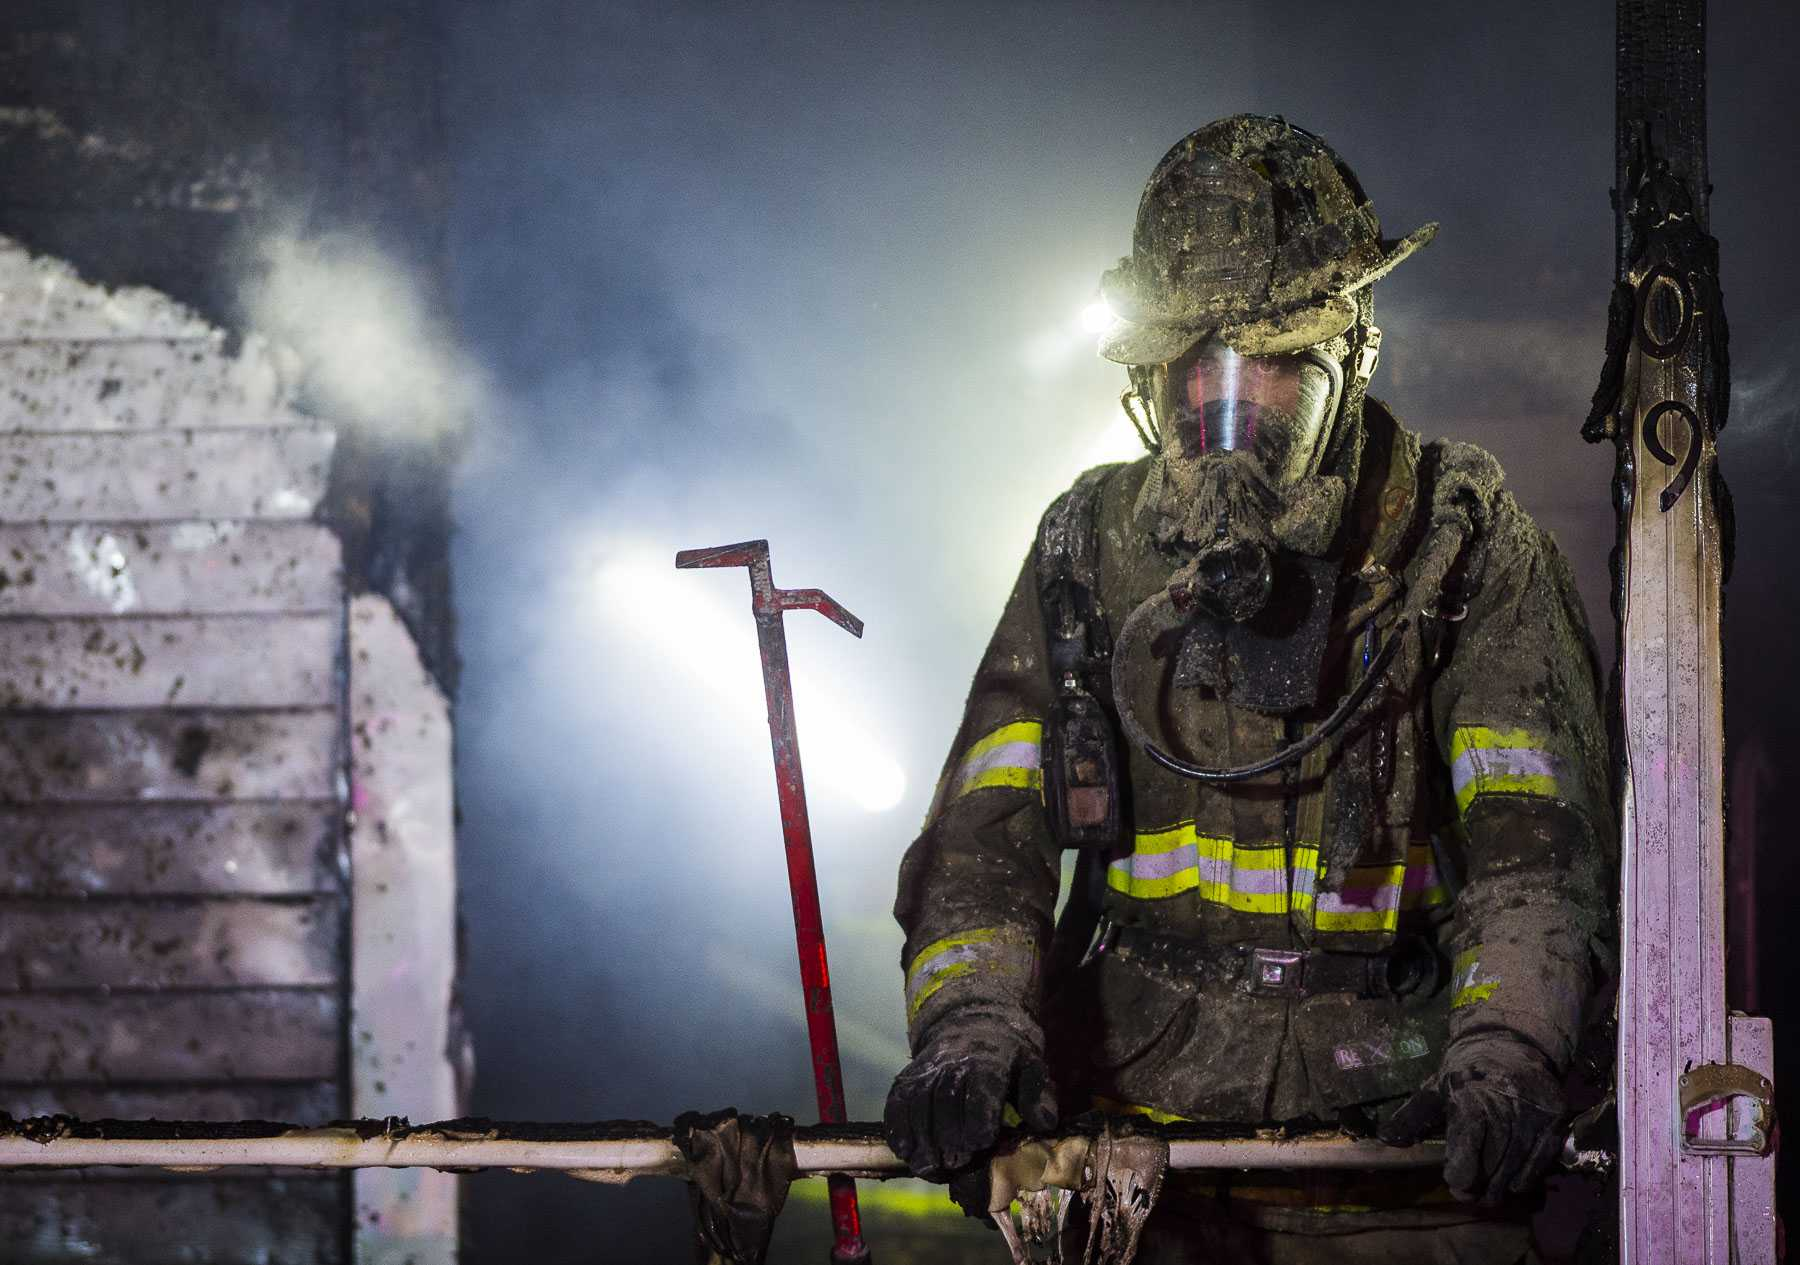 A firefighter works to battle a residential structure fire in the 400 block of East James and Thelma Walker Avenue on Wednesday, Jan. 4, 2017, in Carbondale. There were no injuries, but the home is considered a total loss, Assistant Fire Chief Steve McBride said. The cause of the fire is still under investigation. (Ryan Michalesko | @photosbylesko)